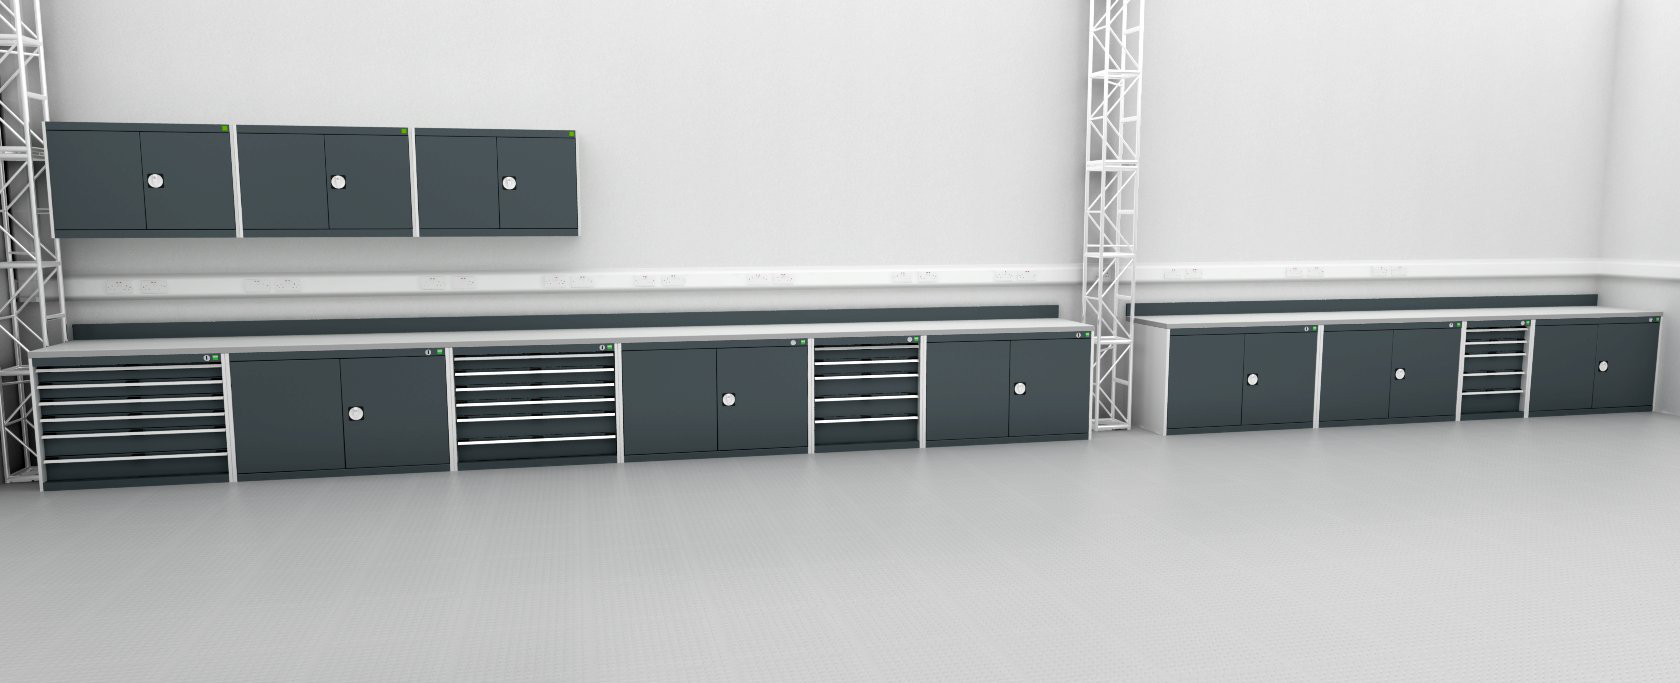 This is the rendered cabinet layout design that we produced for Oxbotica. It fitted perfectly upon delivery.